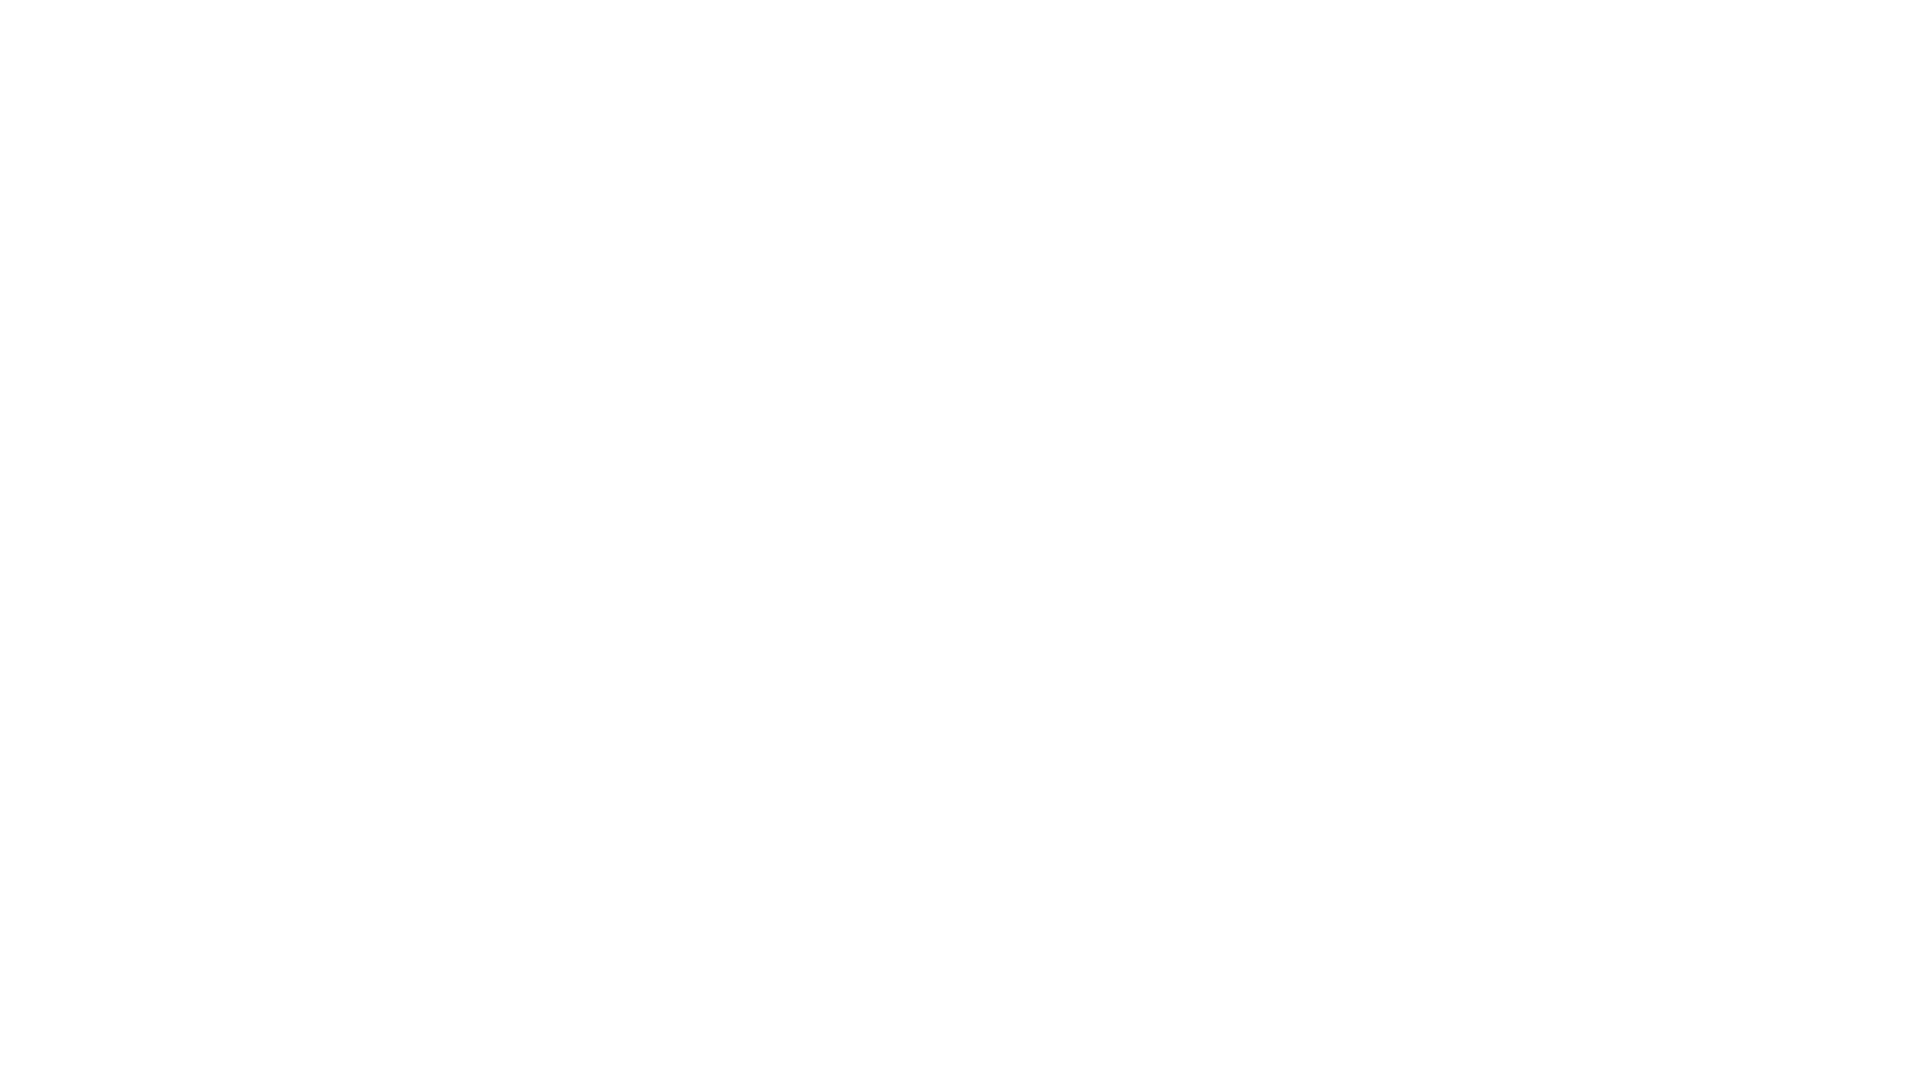 Island of Riddles